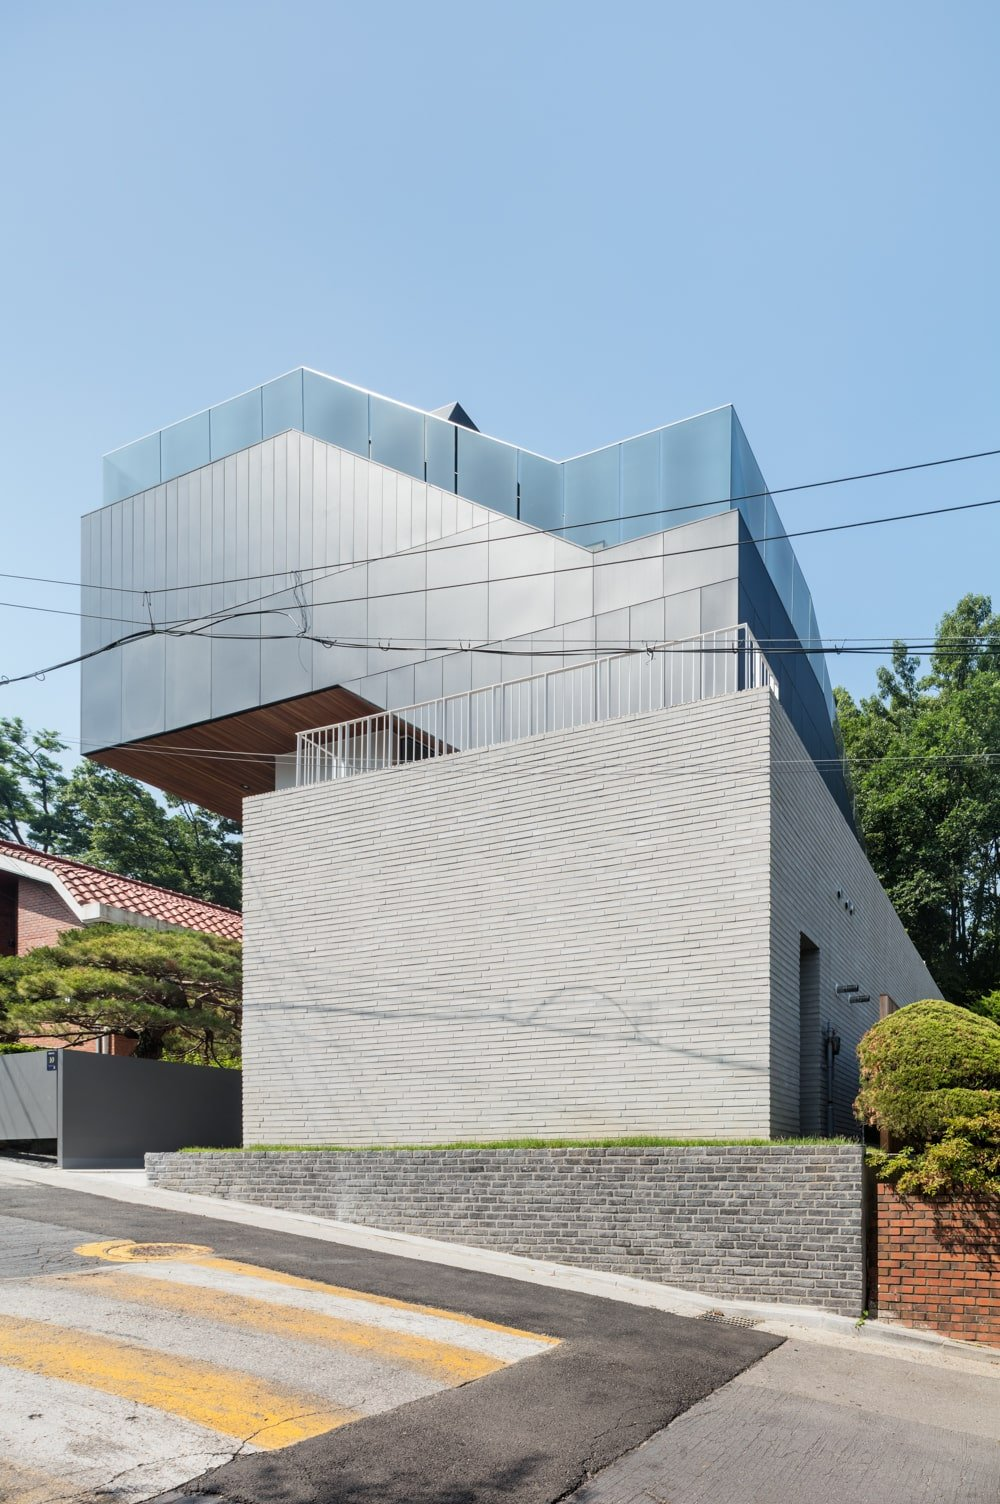 This is a street view of the house that has brick exterior walls and glass railing at the top.